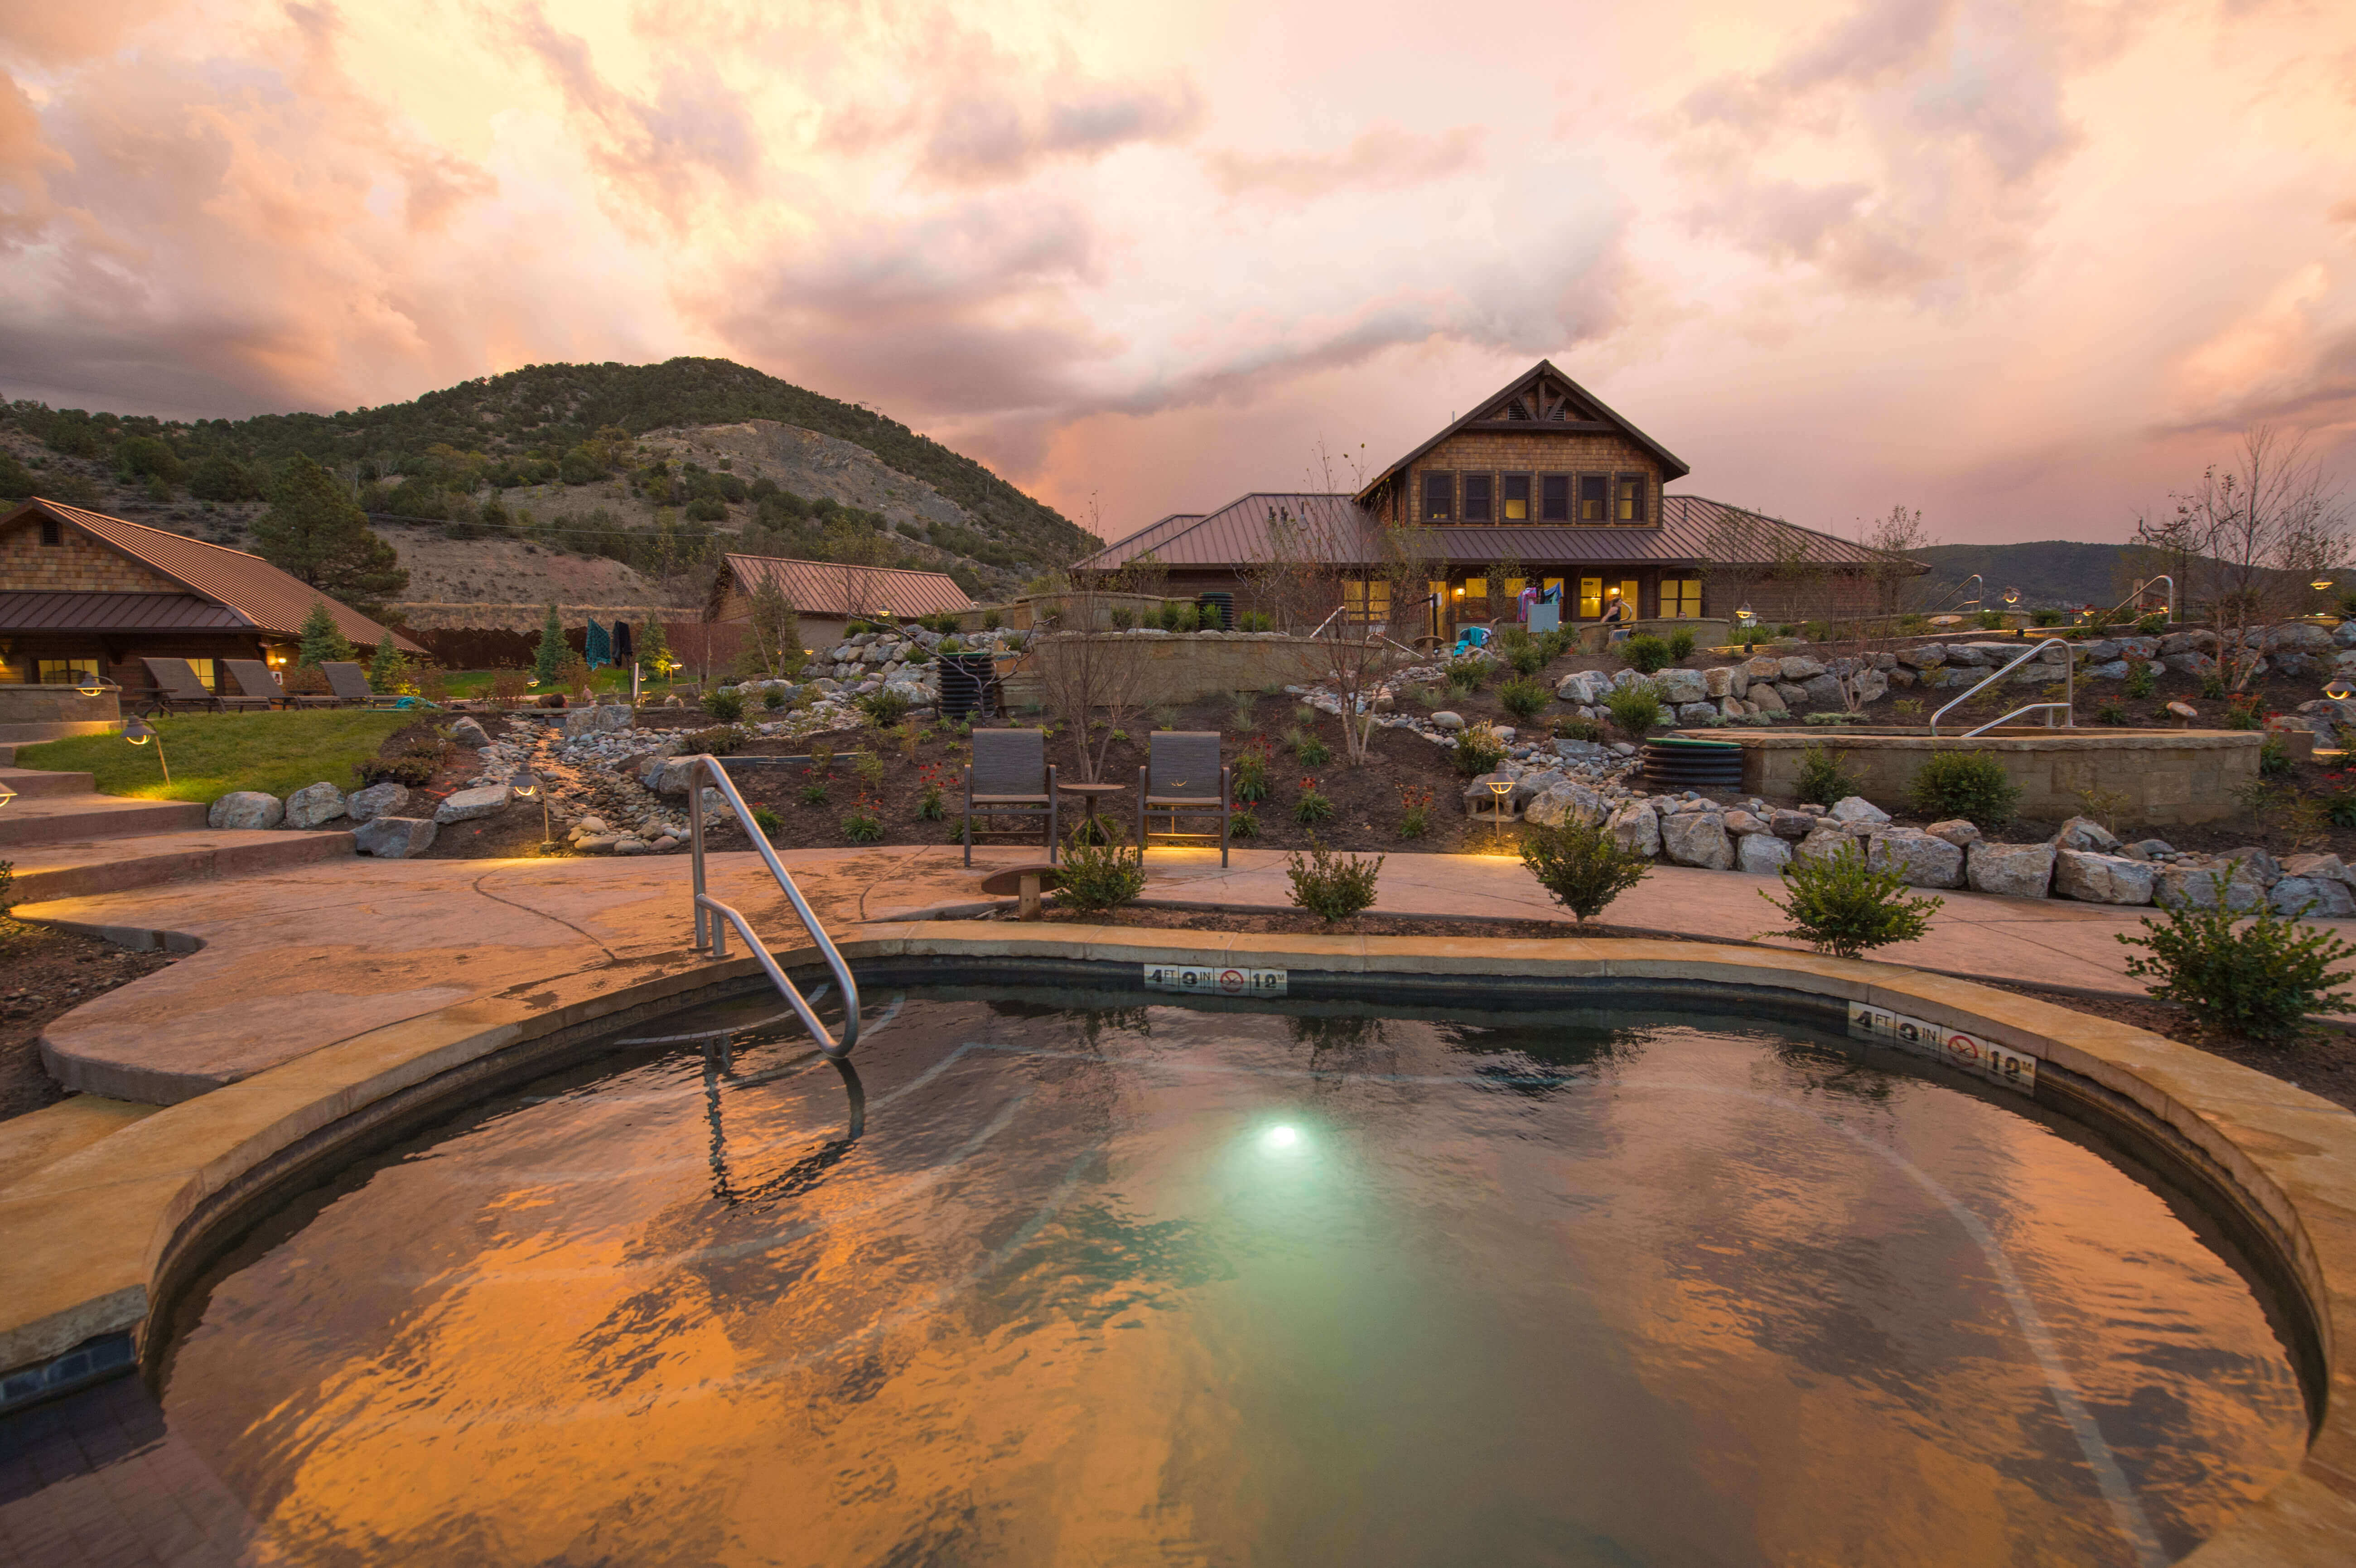 Iron Mountain Hot Springs and Bathhouse at Sunset